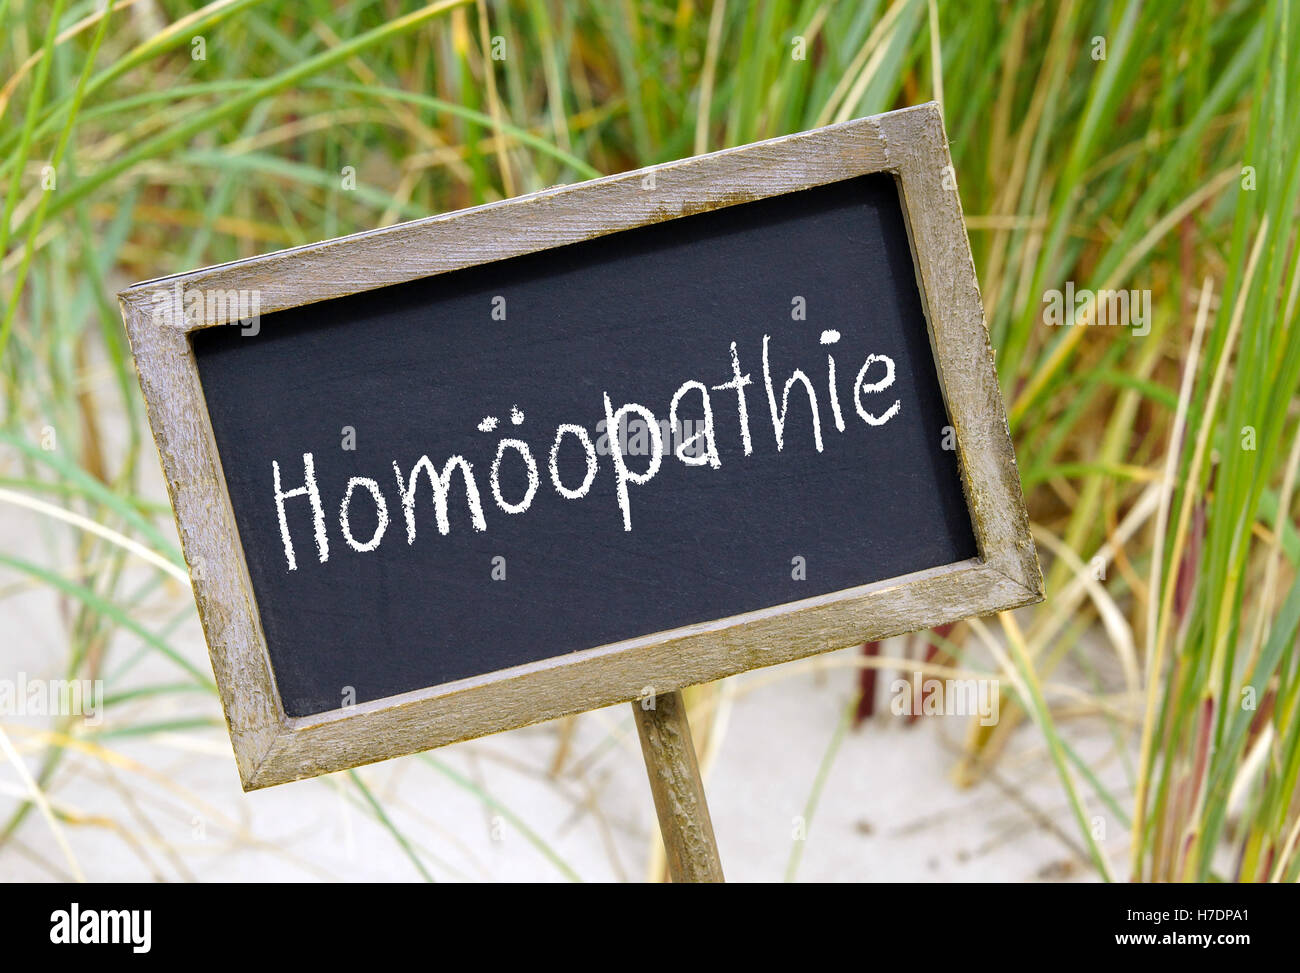 homeopathy - Stock Image